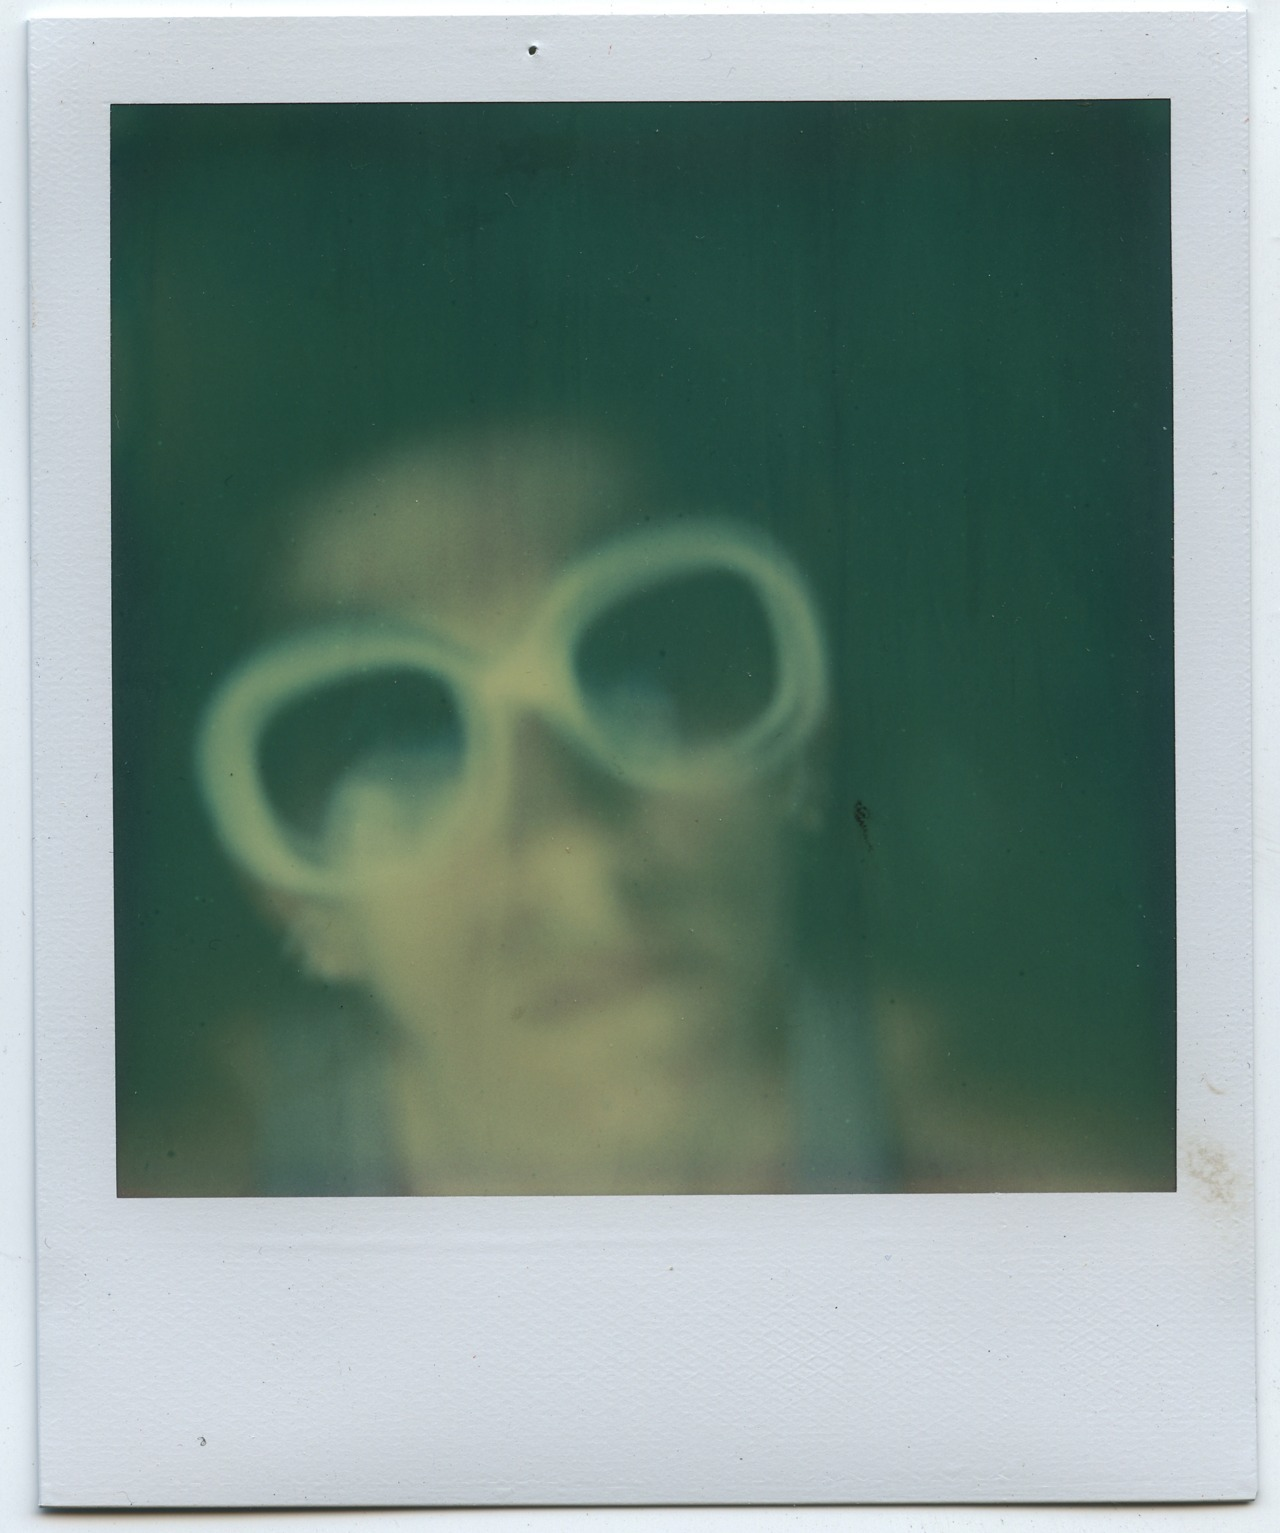 Polaroid Artistic tz -self portraits